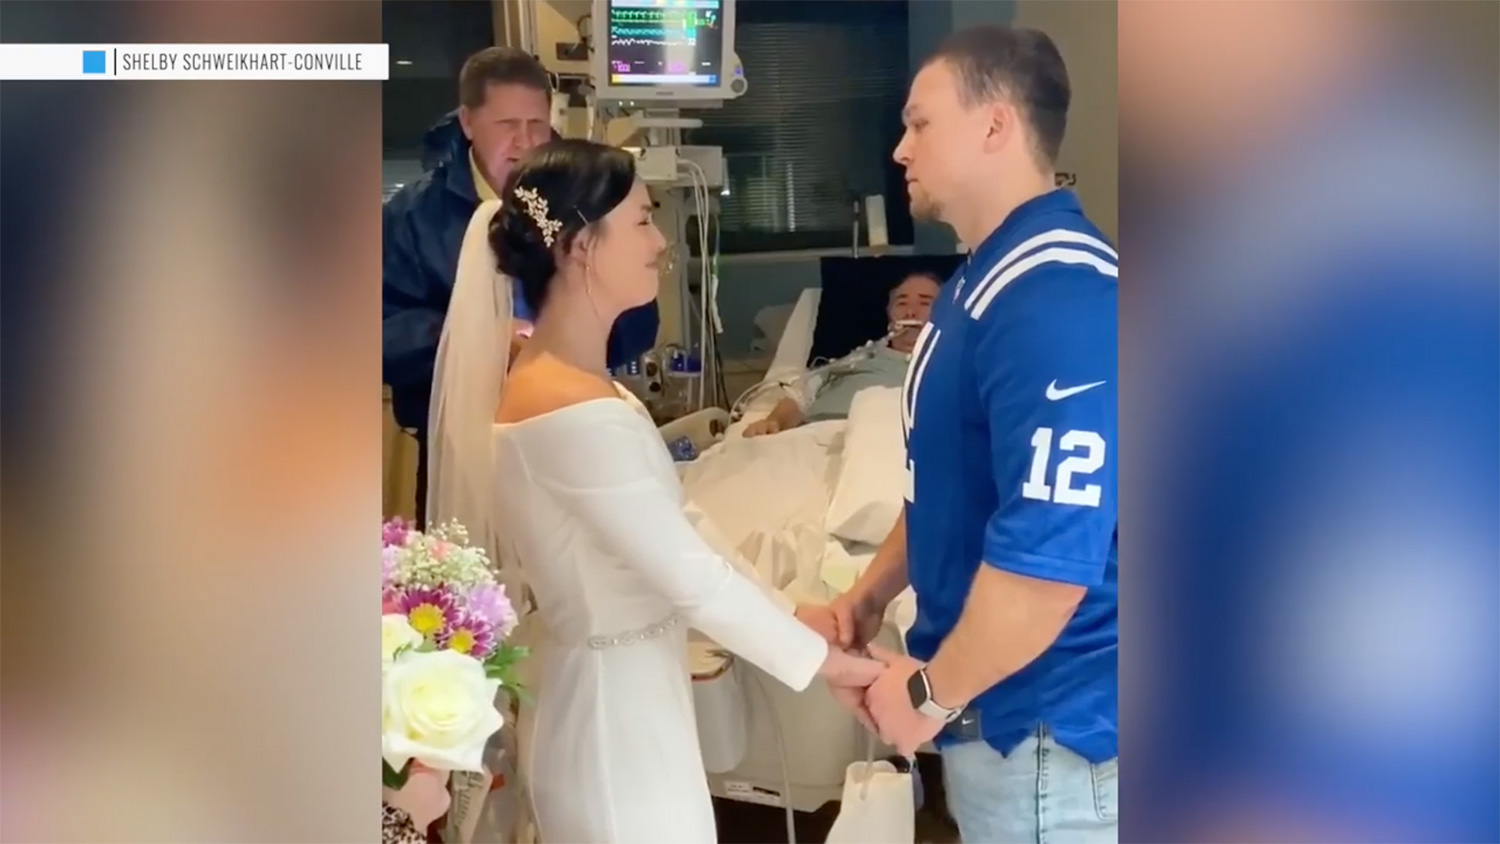 Dad Announces He's Ready to Be Taken Off Life Support After Daughter Marries Fiancé at Hospital